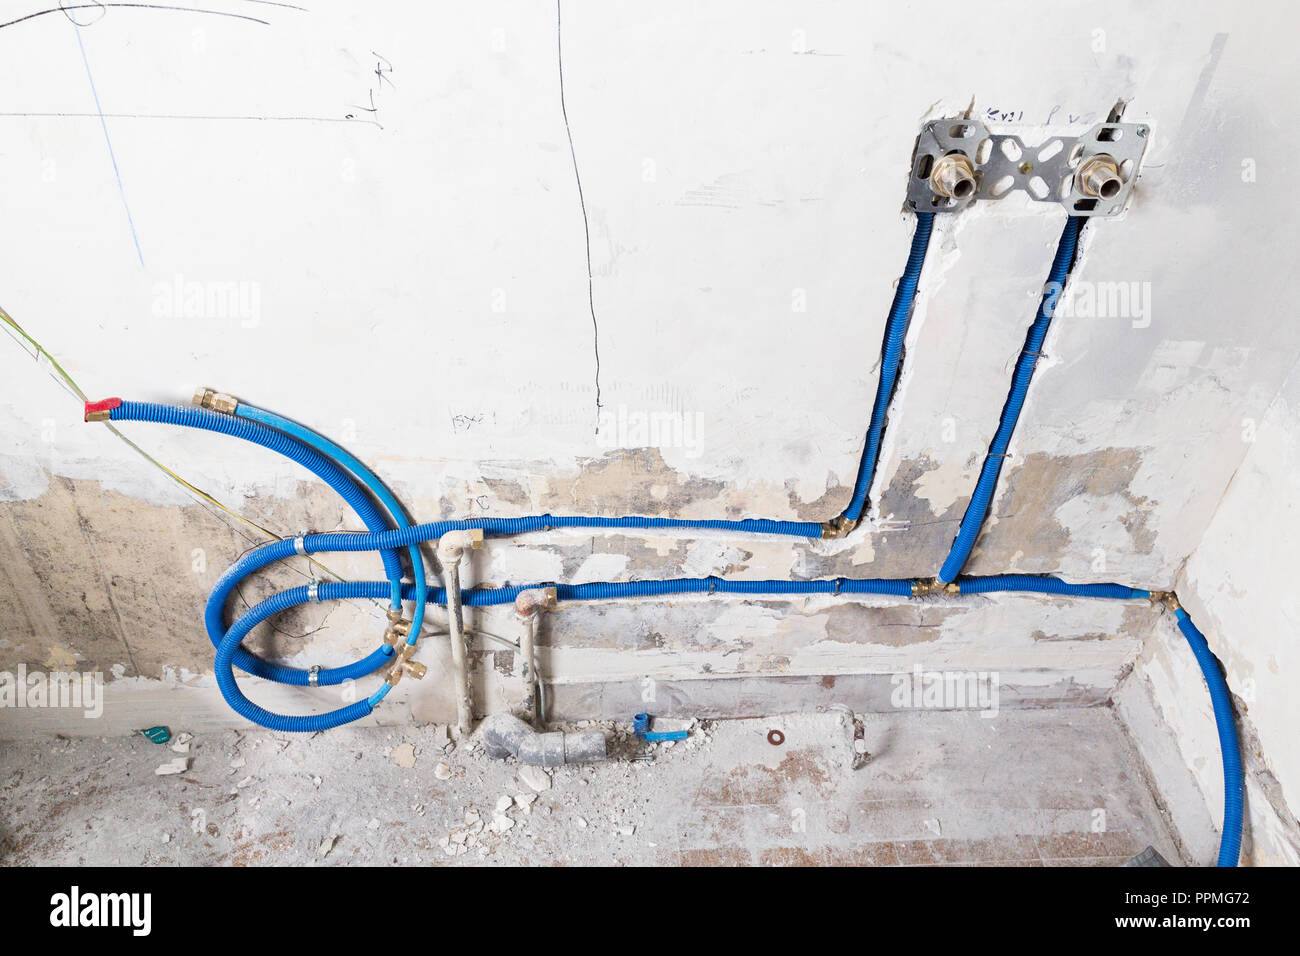 hight resolution of water pipes made of polypropylene pex in the wall plumbing in the house installation of sewer pipes in a bathroom of an apartment interior during re